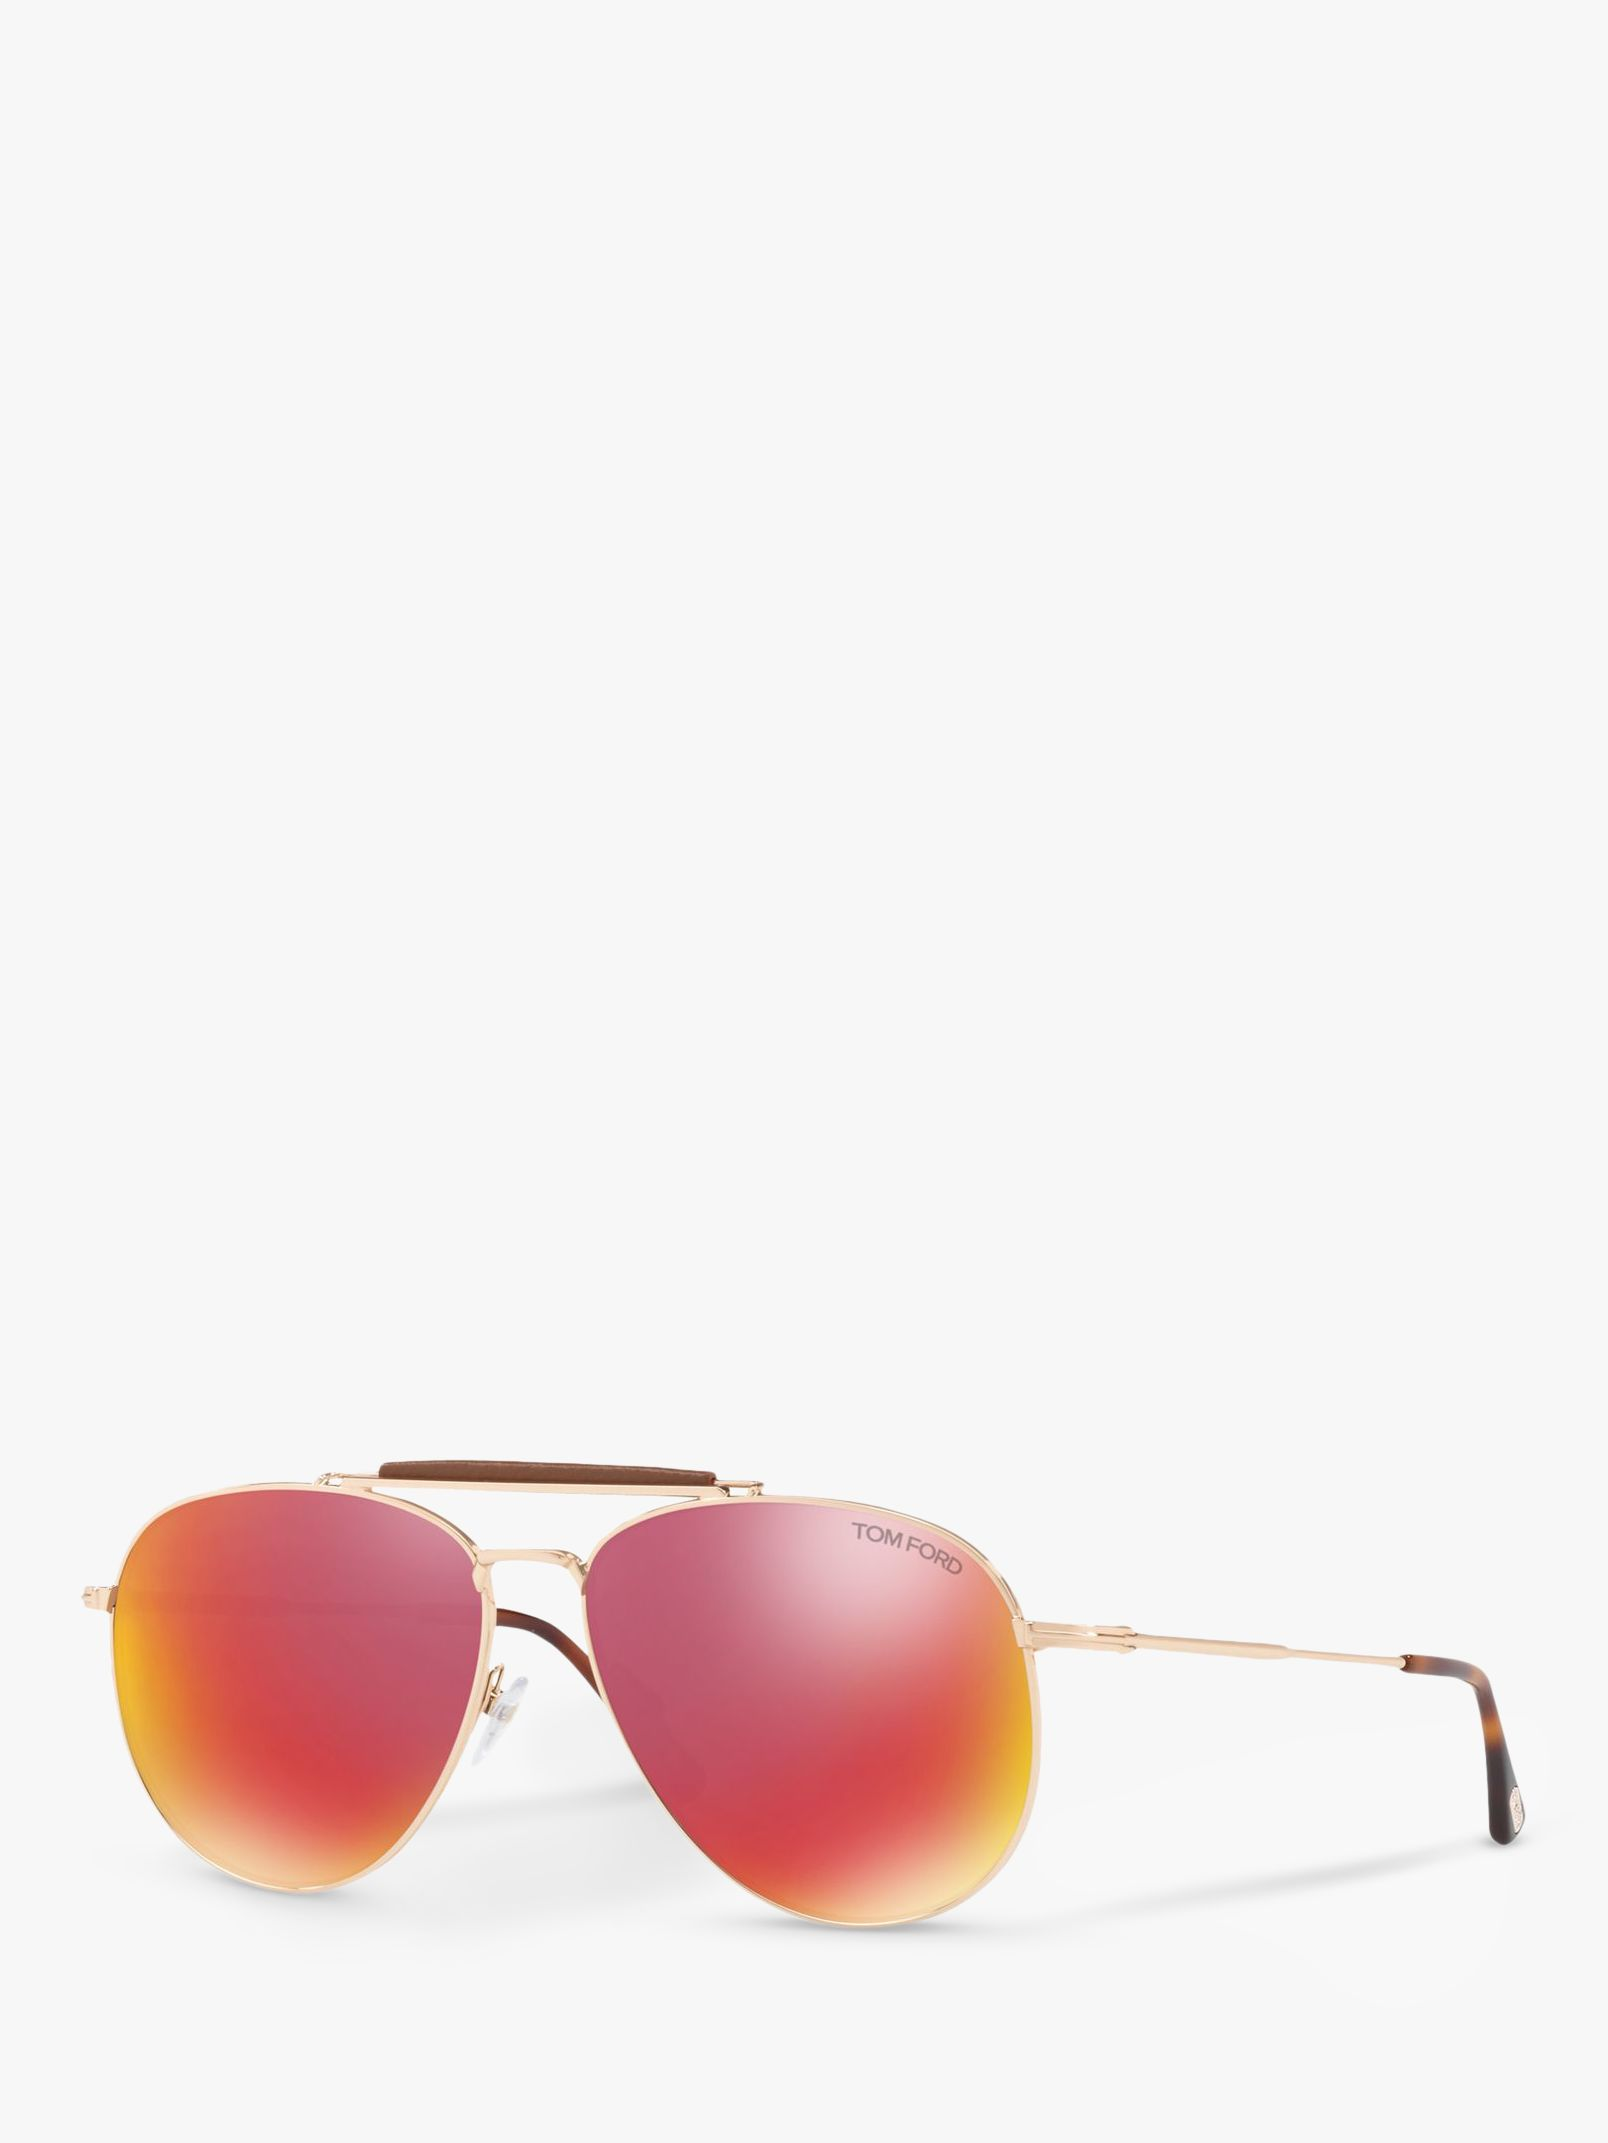 Tom Ford TOM FORD FT0536 Sean Aviator Sunglasses, Rose Gold/Mirror Pink